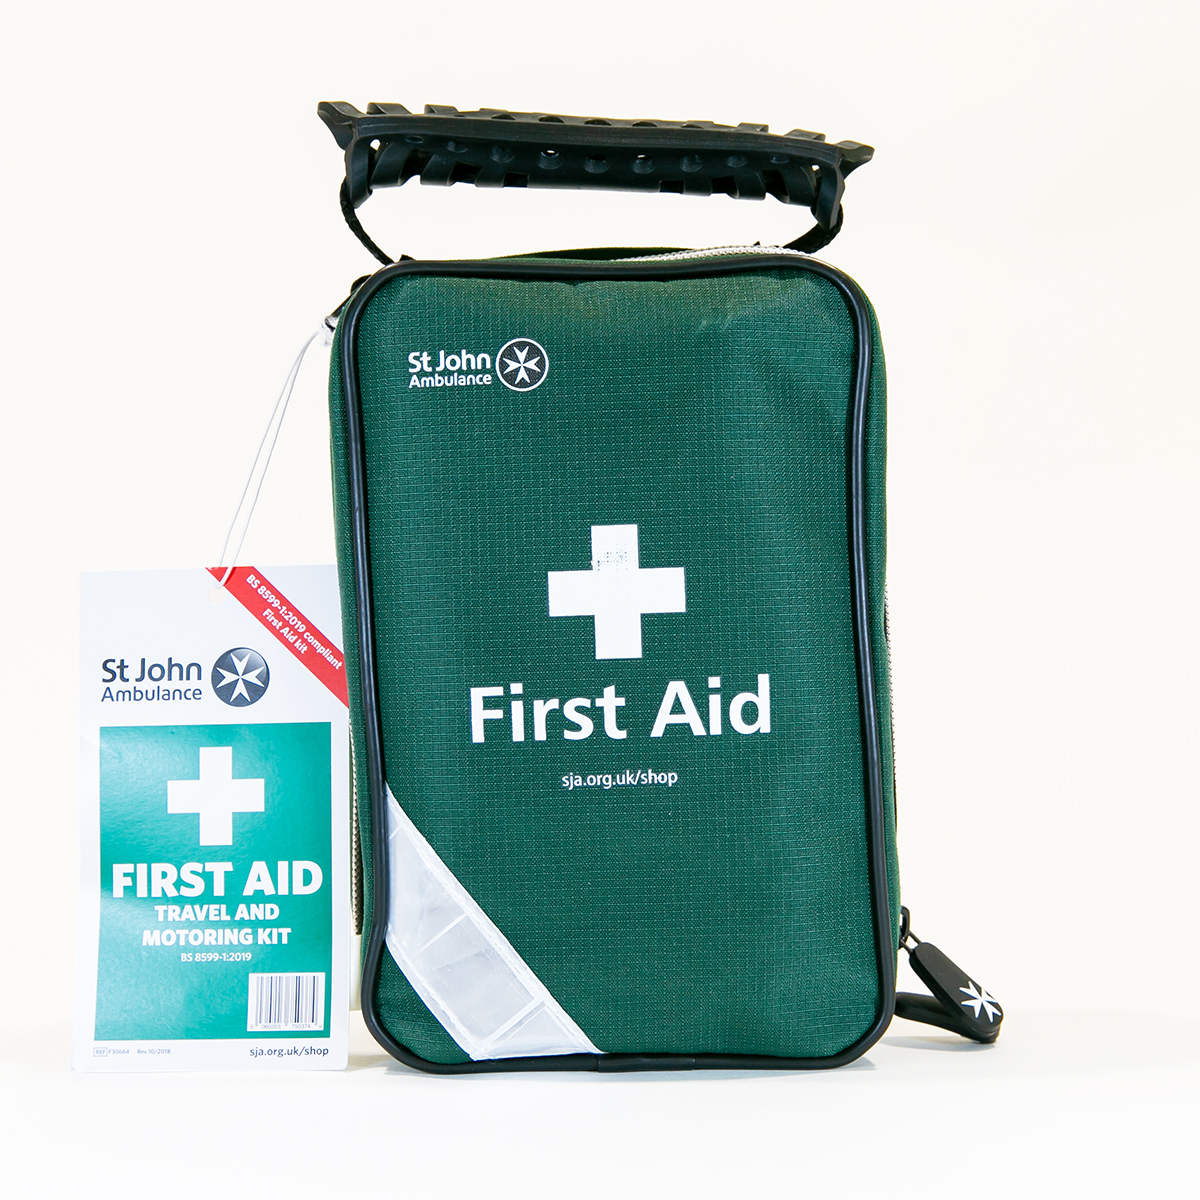 St John Ambulance Zenith Travel and Motoring Workplace First Aid Kit BS 8599-1:2019